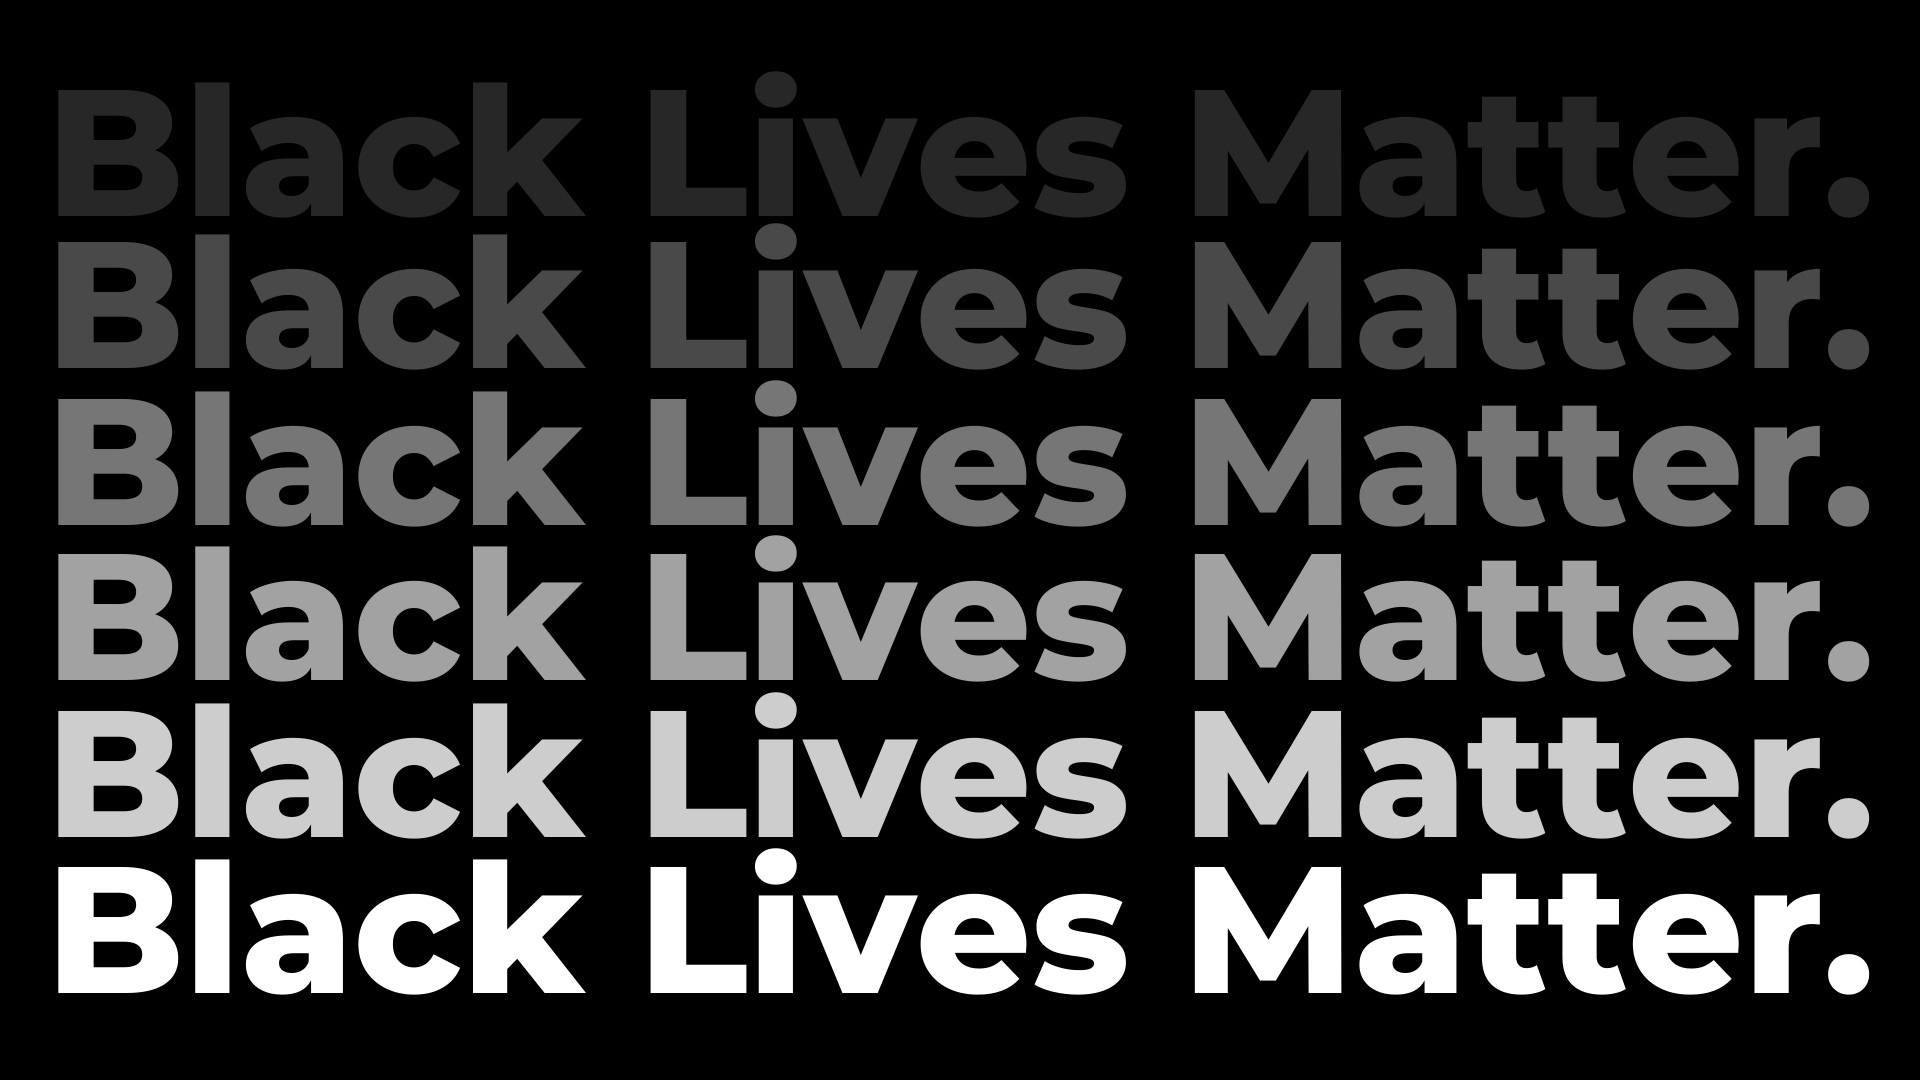 black lives matter image in hd